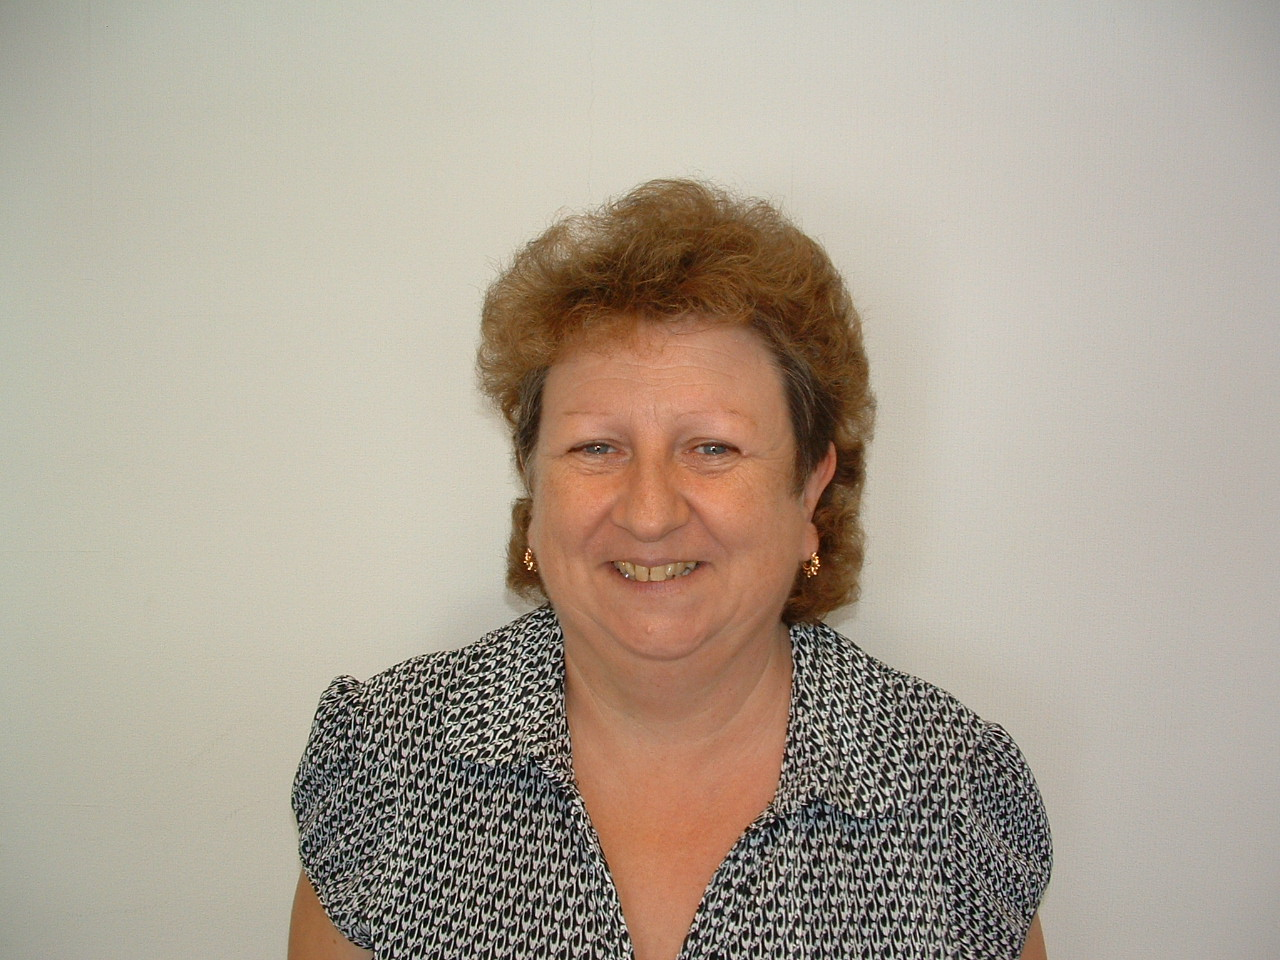 Home Instead Norwich Care Manager and finalist in the Great East of England Care Awards 2011, Viv Lawrence